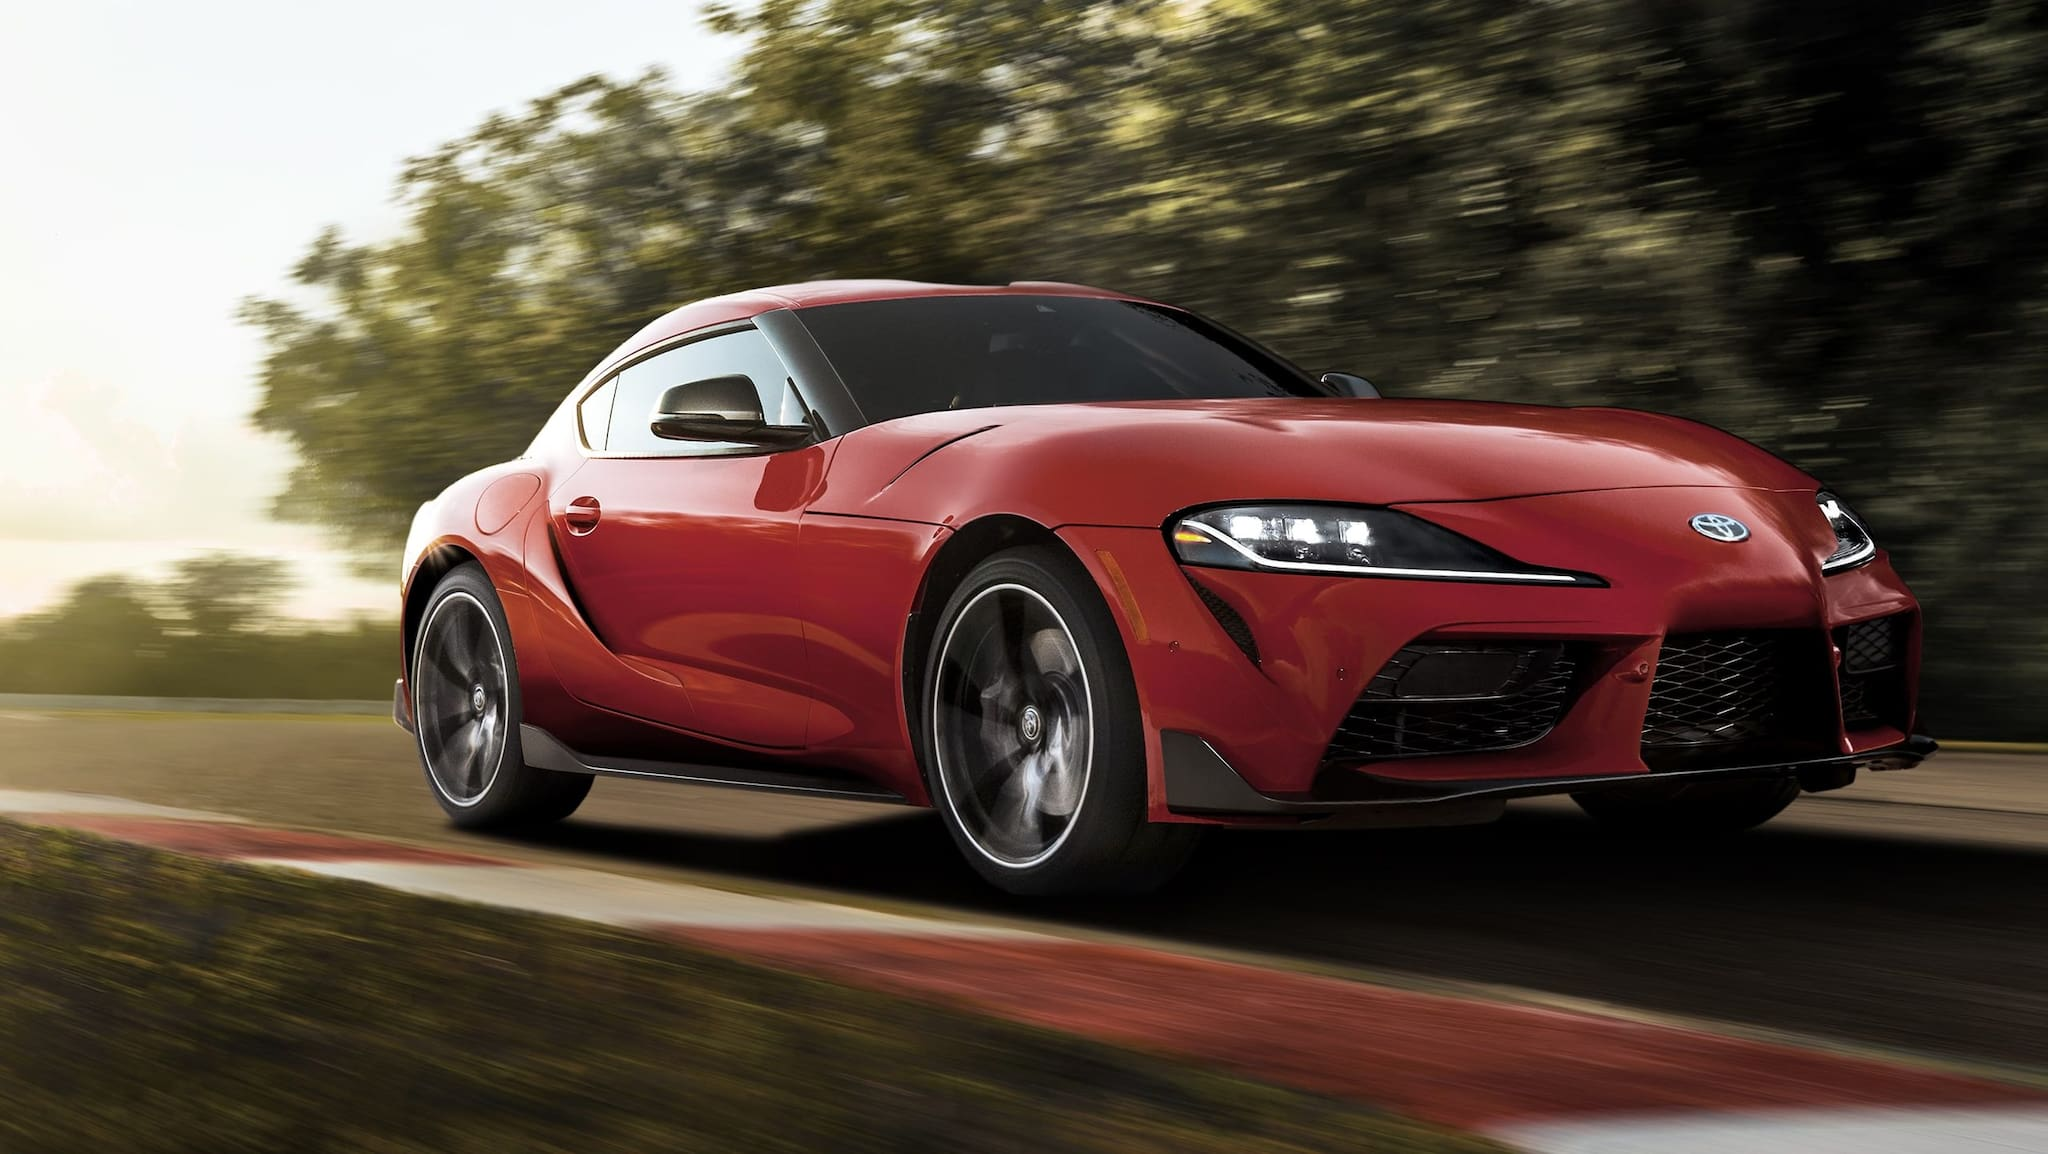 It's Official! Toyota Launches All-New Toyota Supra